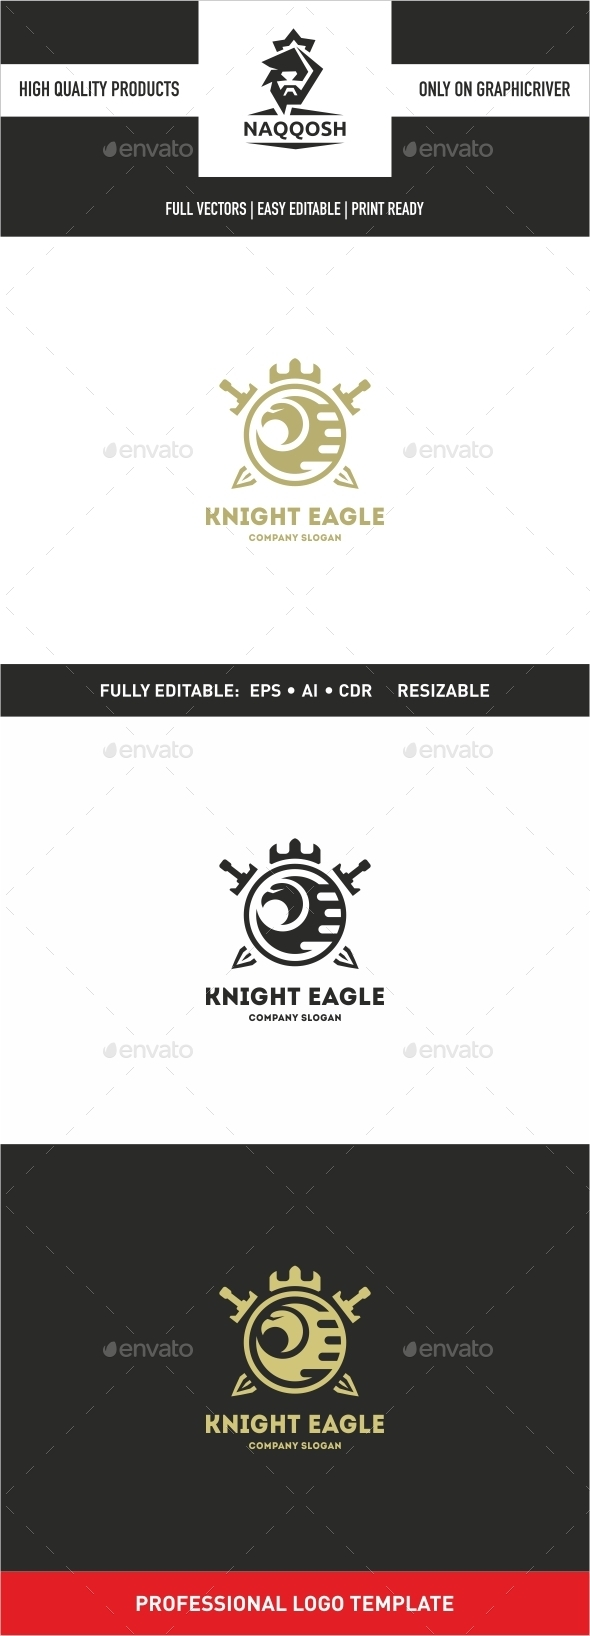 GraphicRiver Knight Eagle 10700406